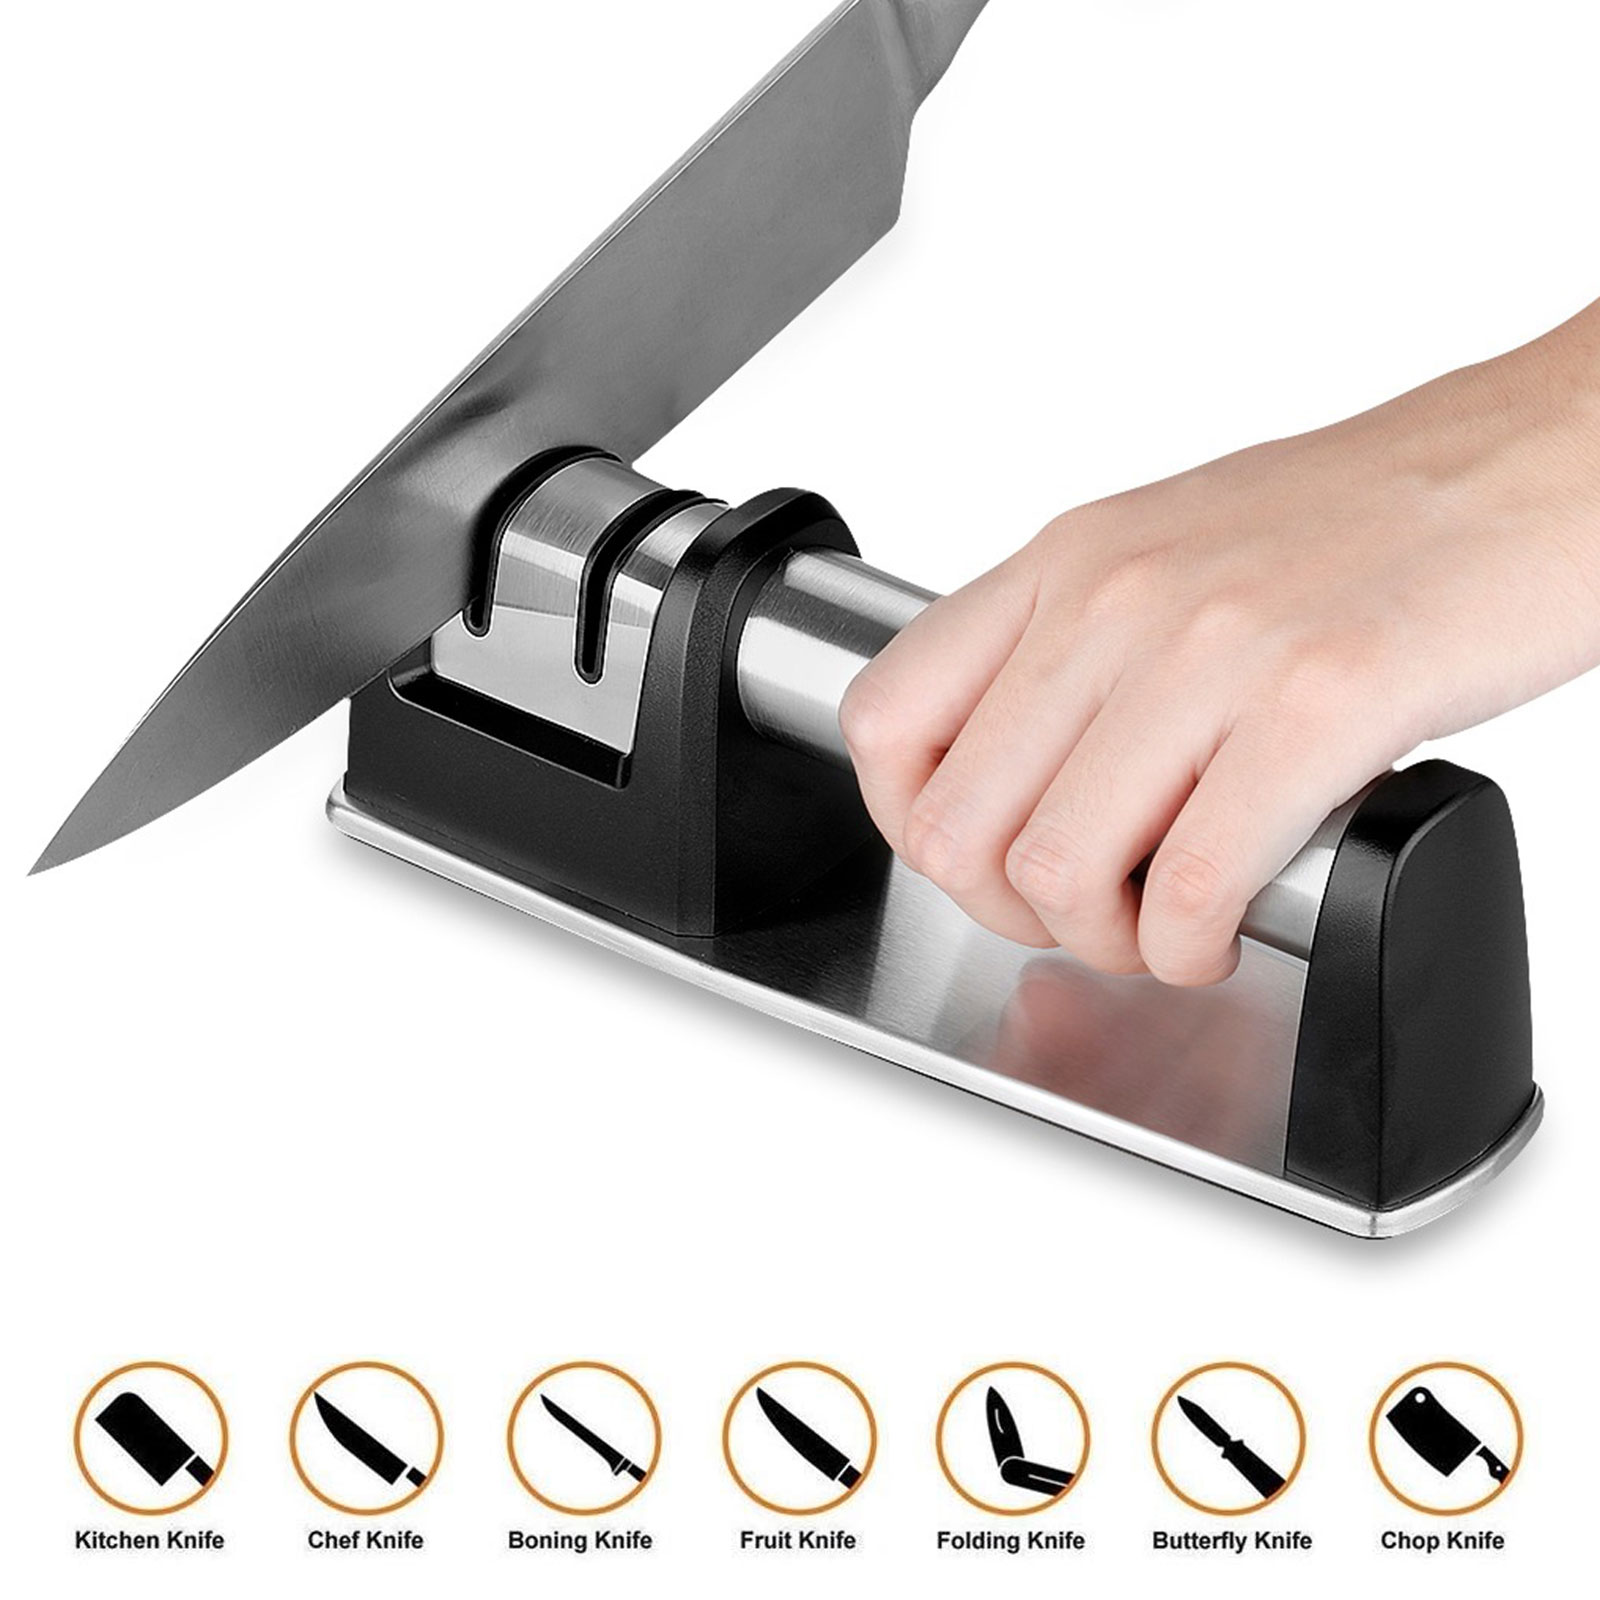 Professional Kitchen Knife Sharpener - 2-Stage Knife Sharpening Tool Helps Repair, Profession Knife Sharpening Tool, Restore and Polish Blades